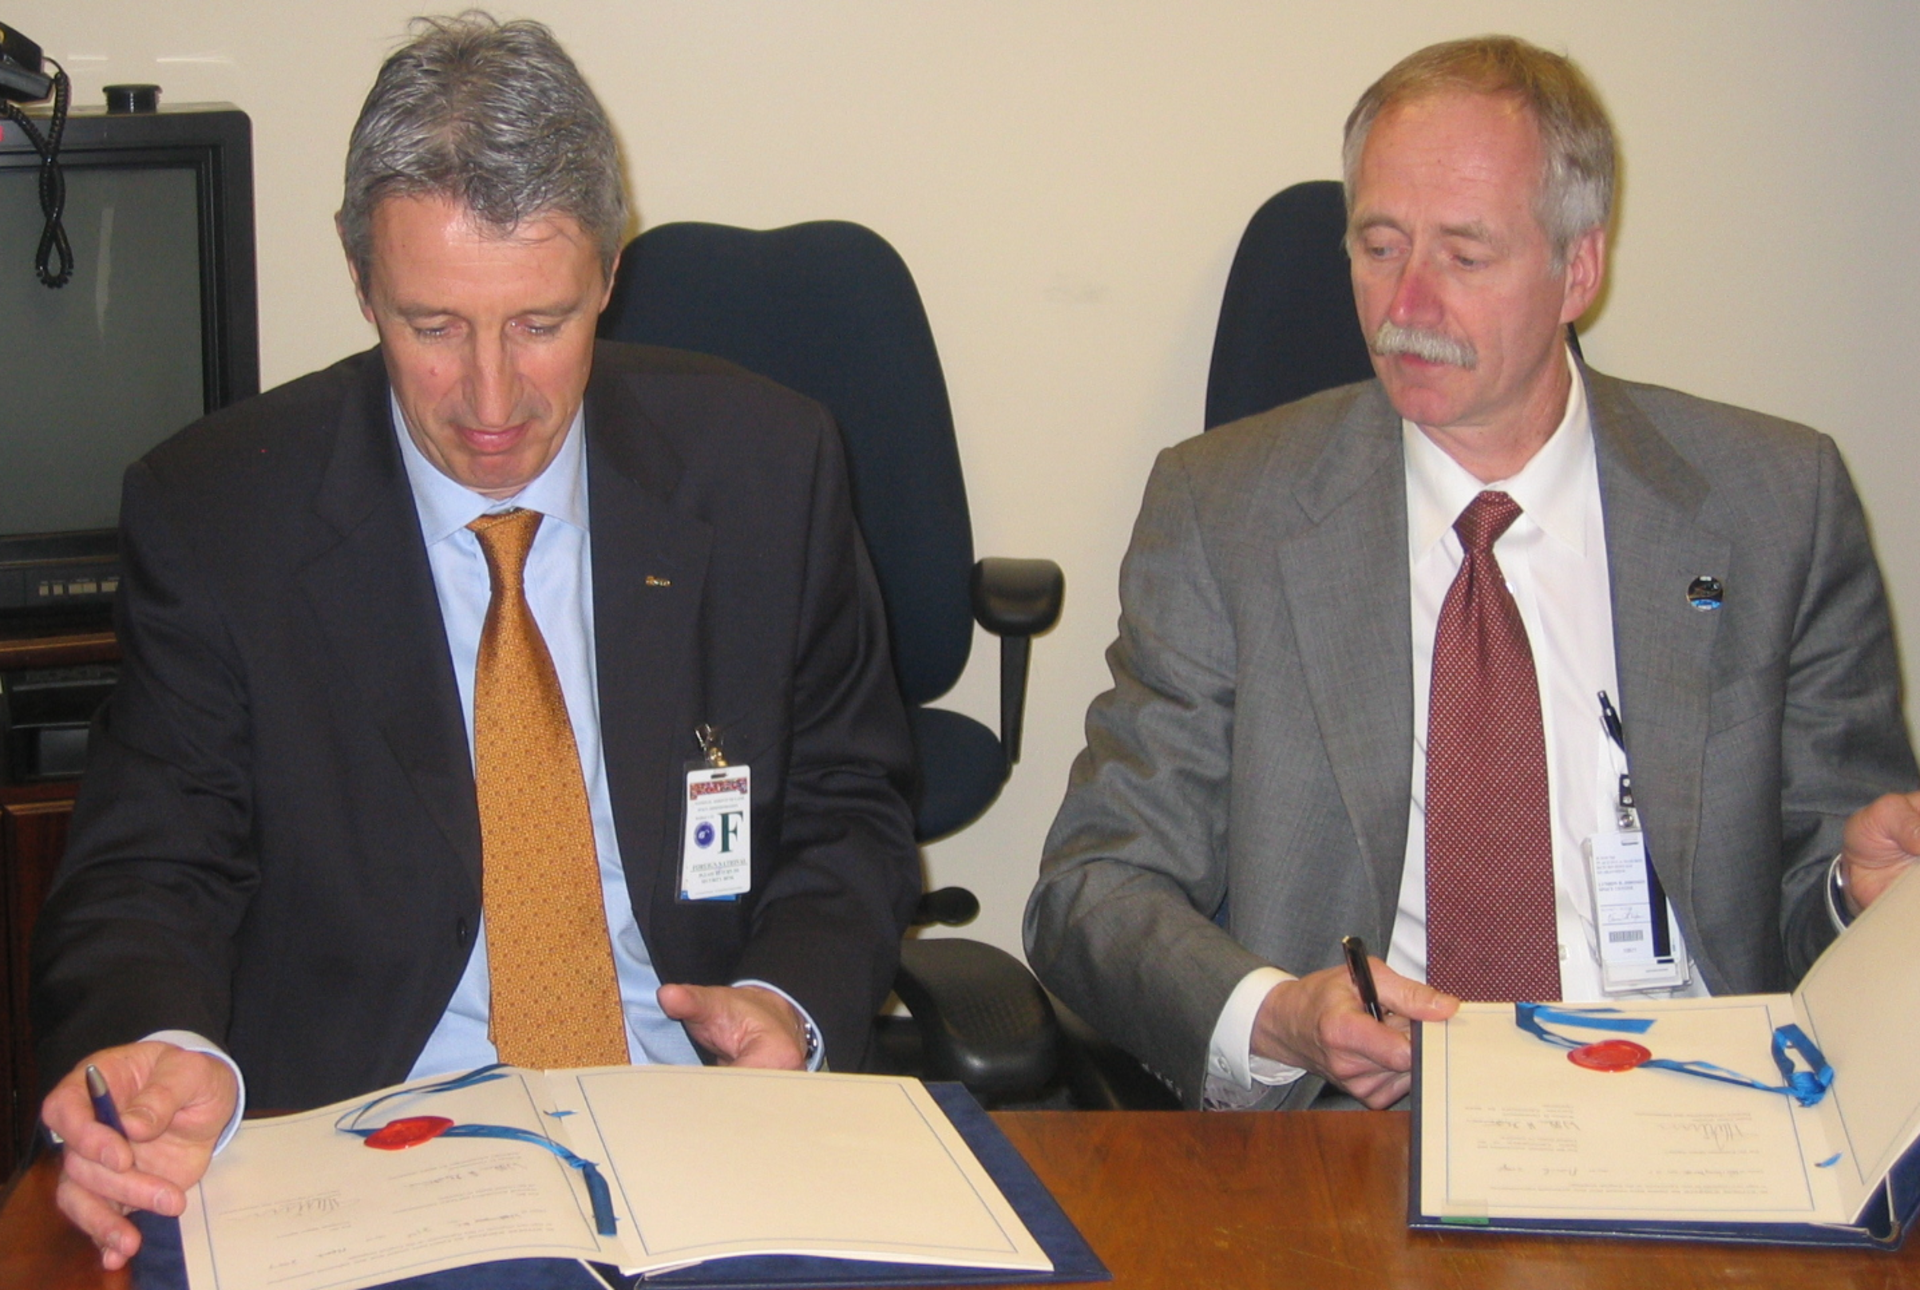 G. Winters for ESA and W.H. Gerstenmaier for NASA signing agreement in Washinton, DC, 21 March 2007